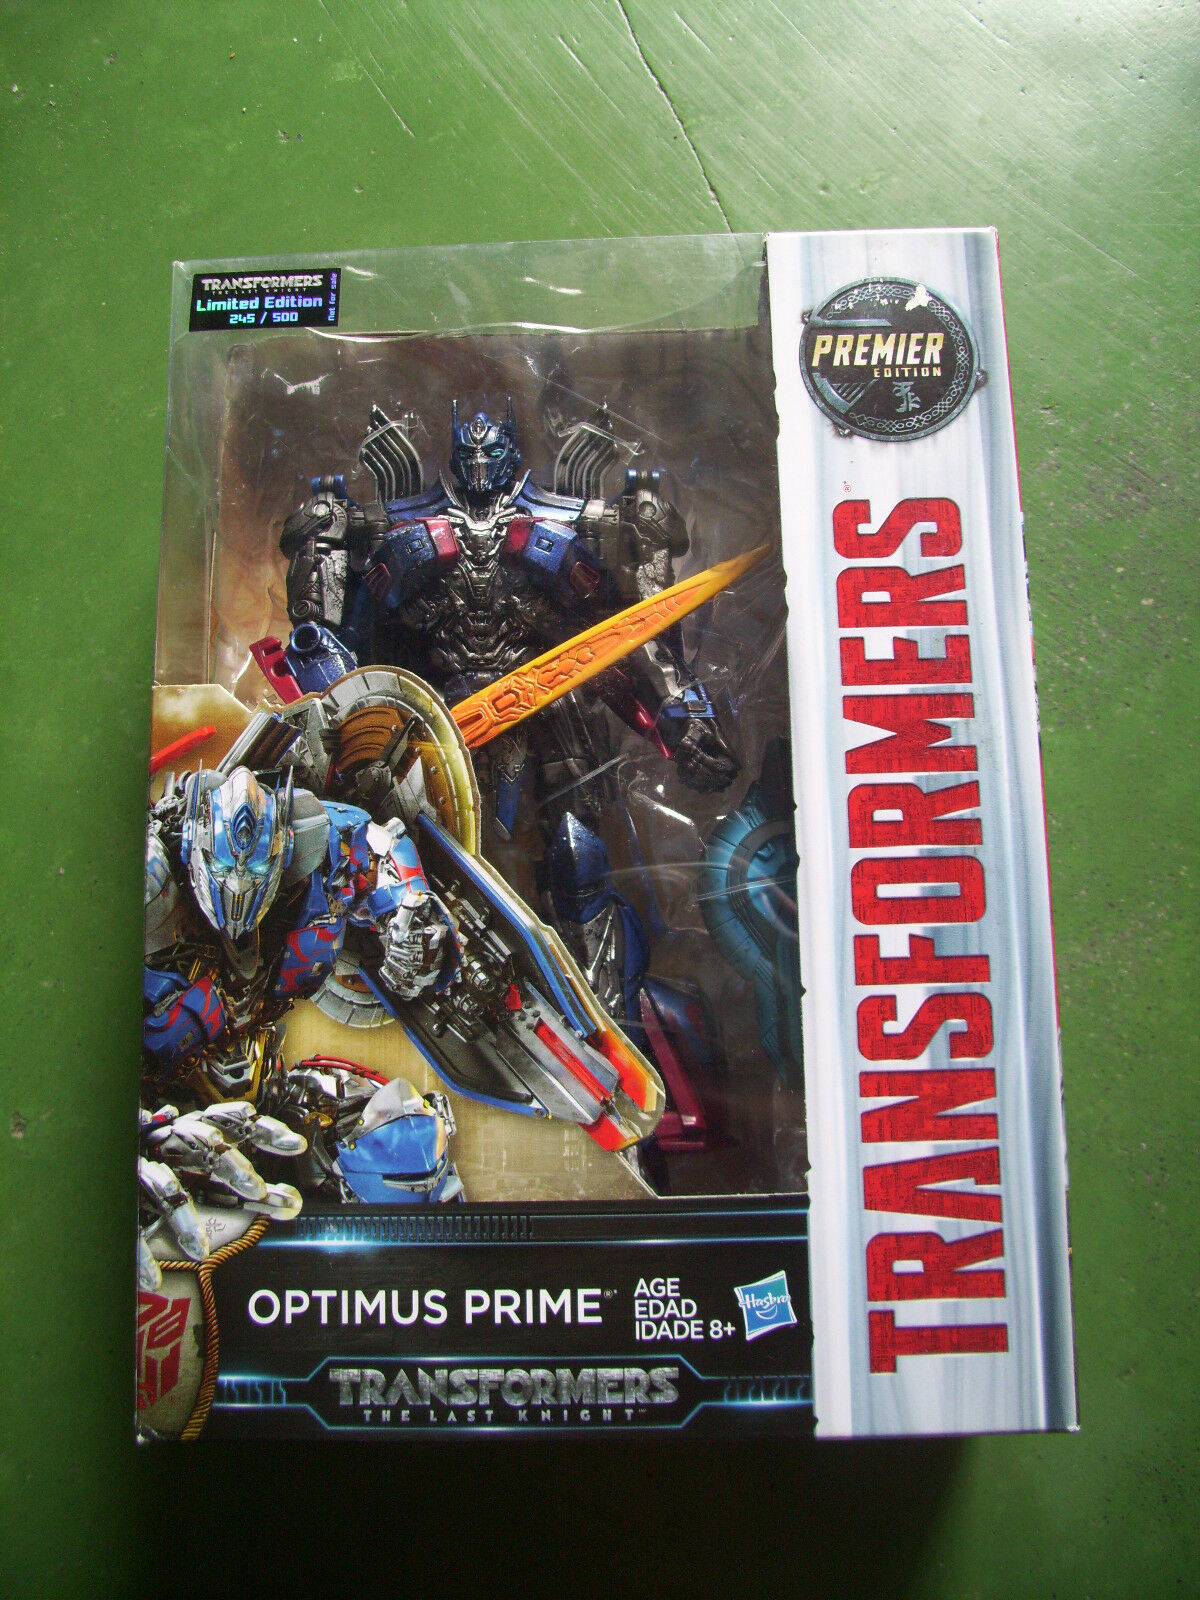 Transformers The Last Knight Optimus Prime TRU Limited Edition MISB 245 500